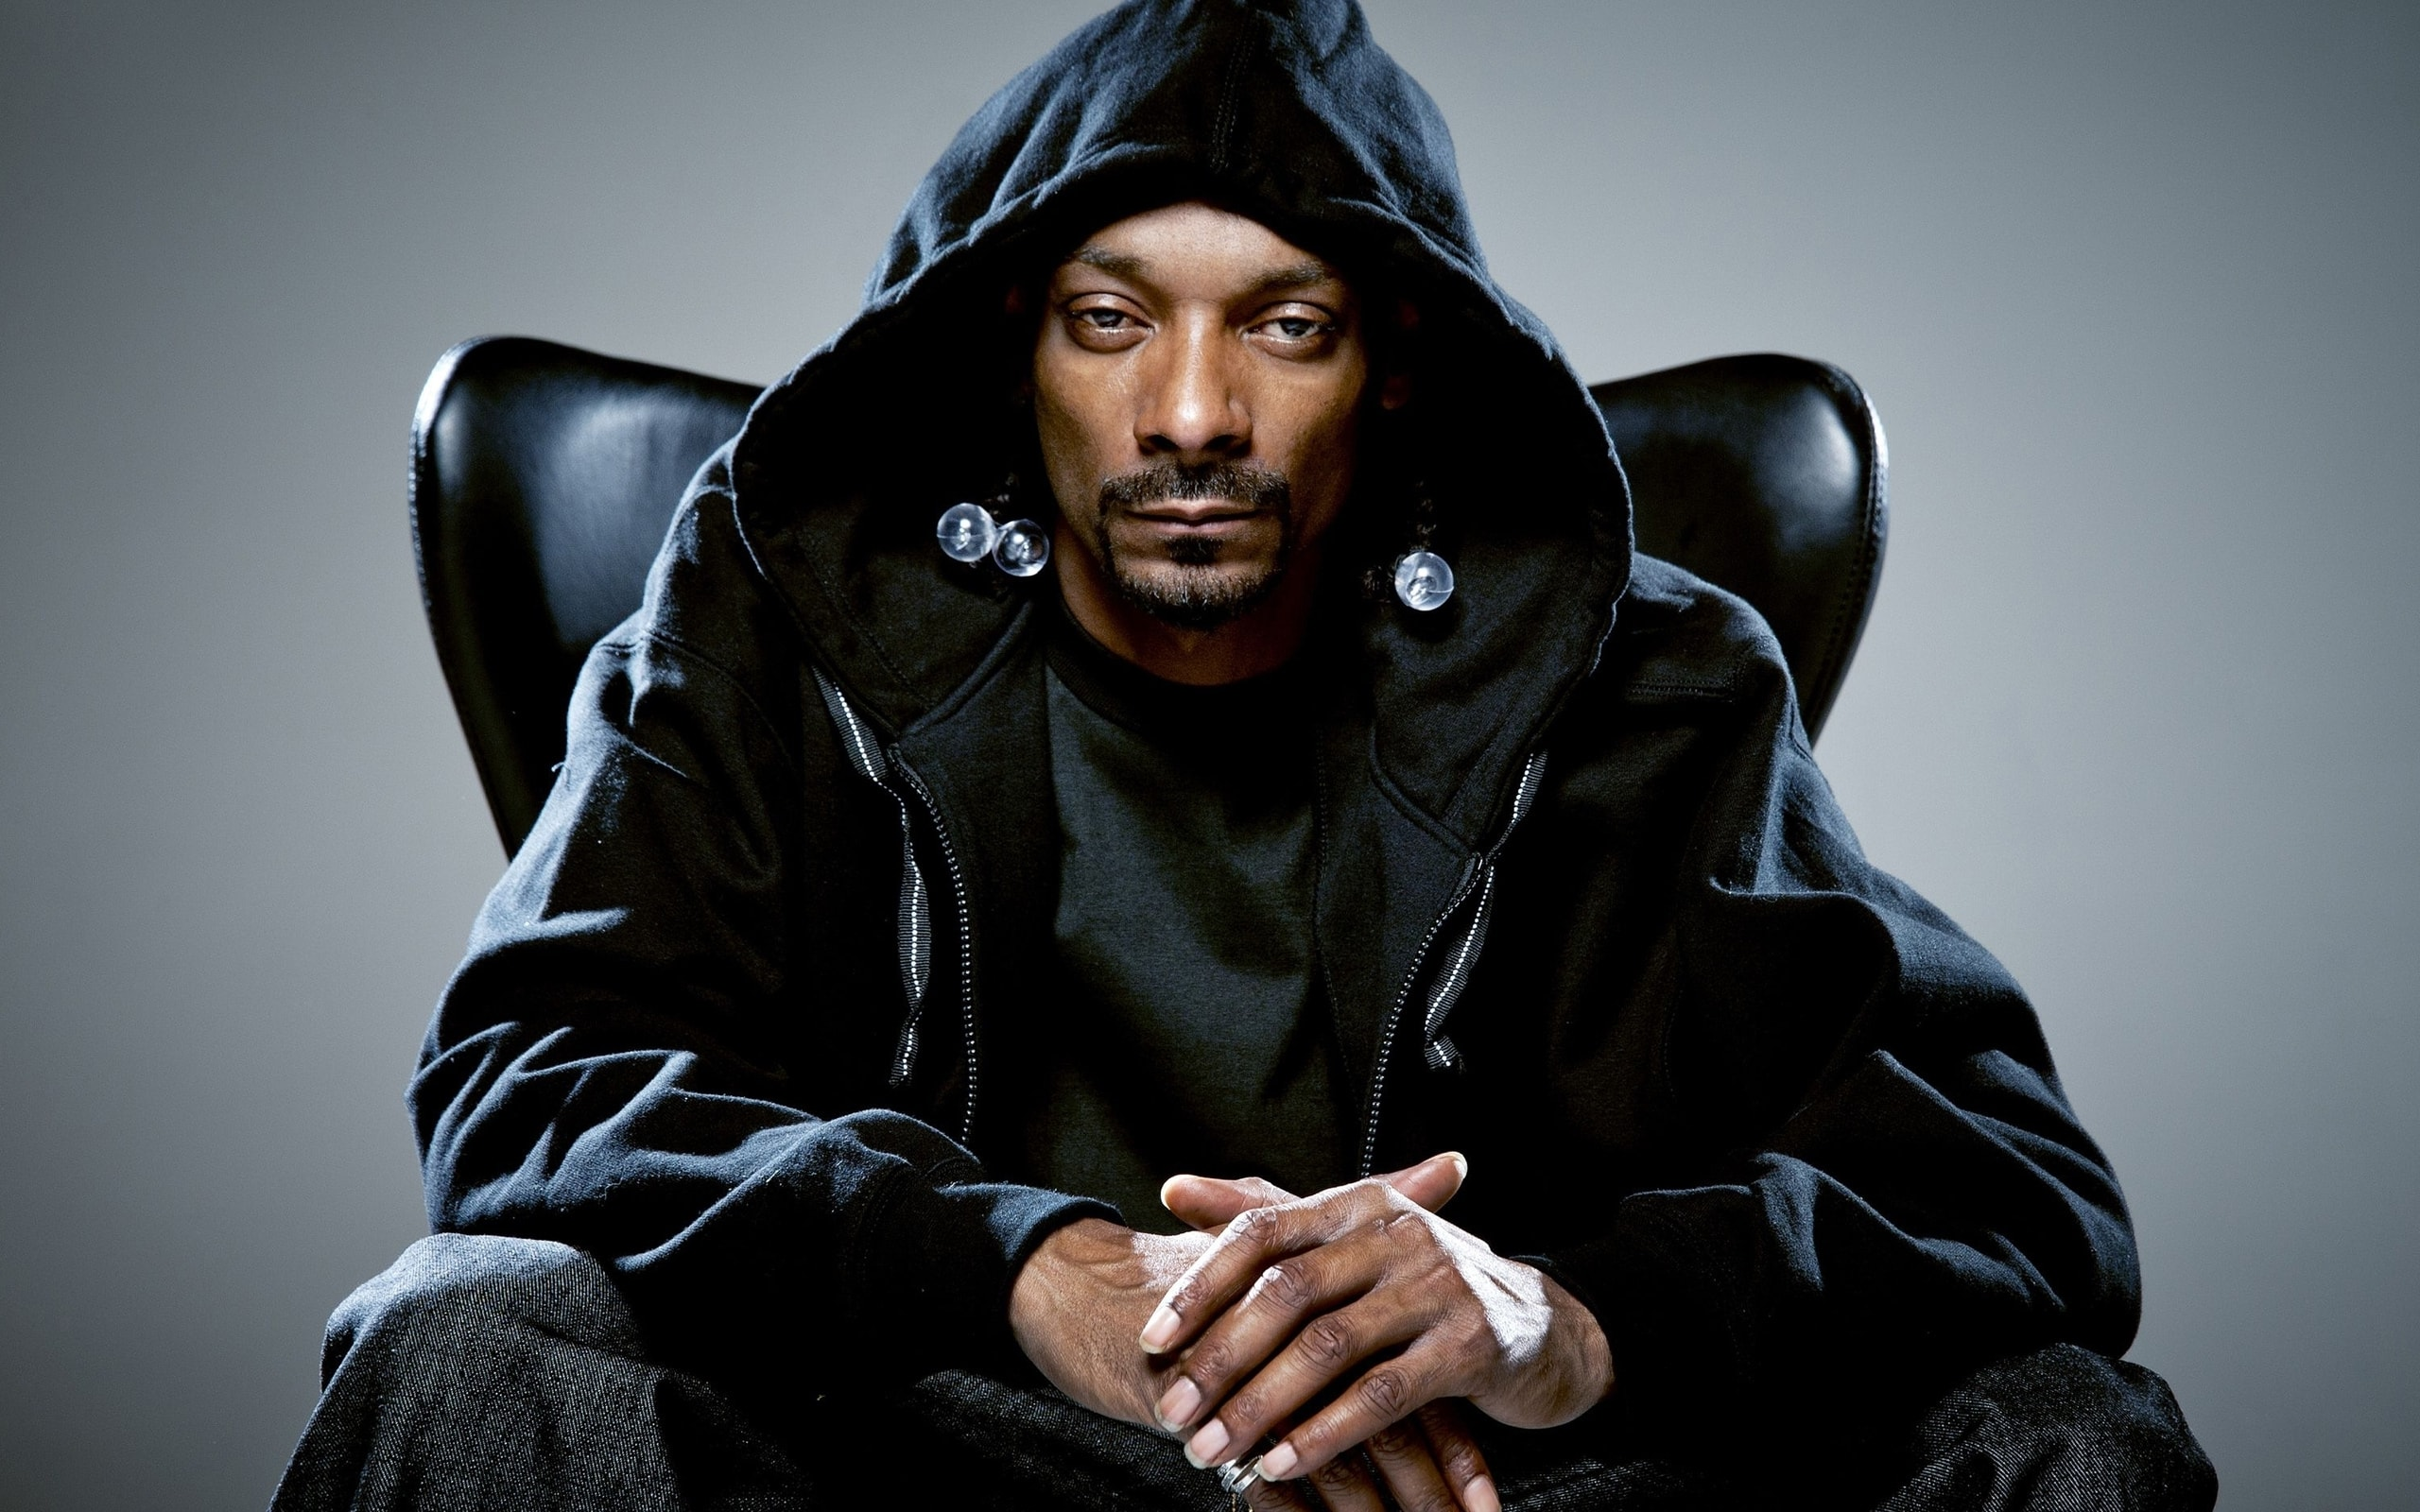 snoop dogg wallpaper background 62585